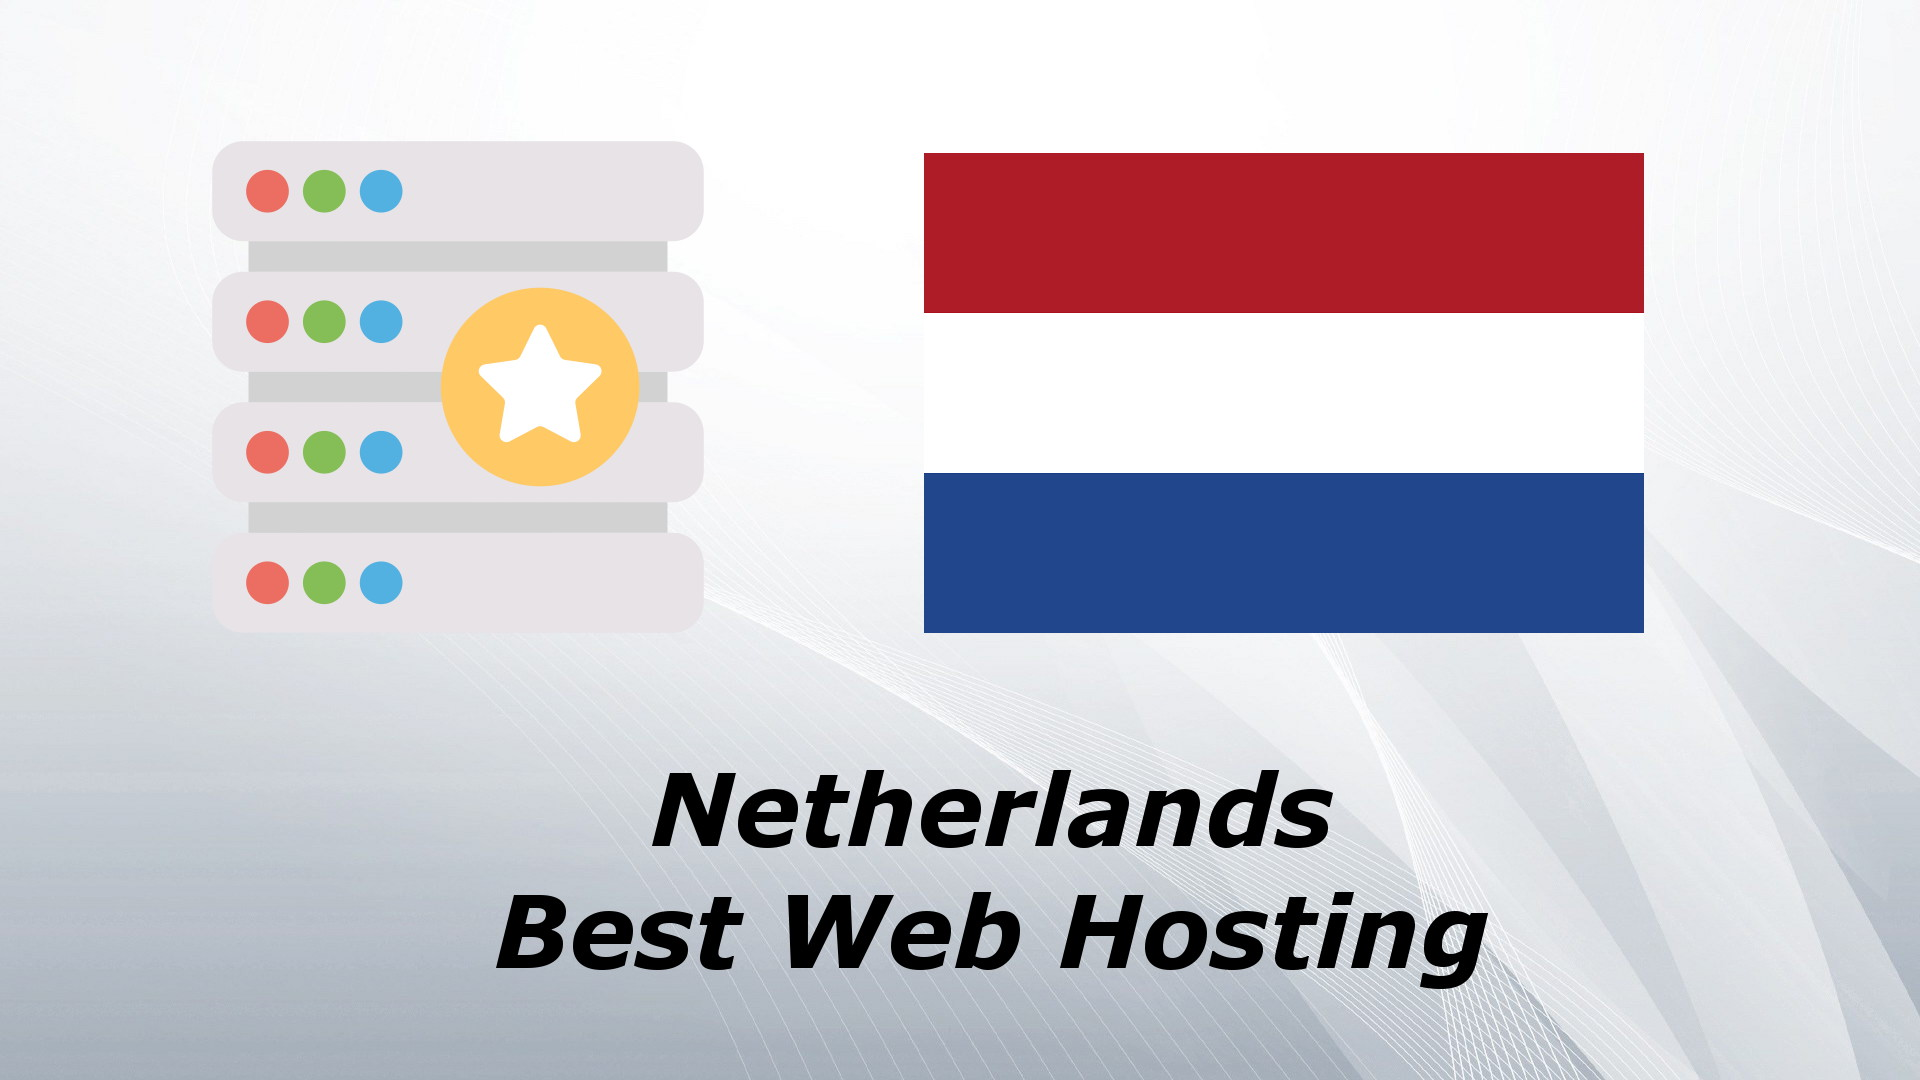 Netherlands Best Web Hosting